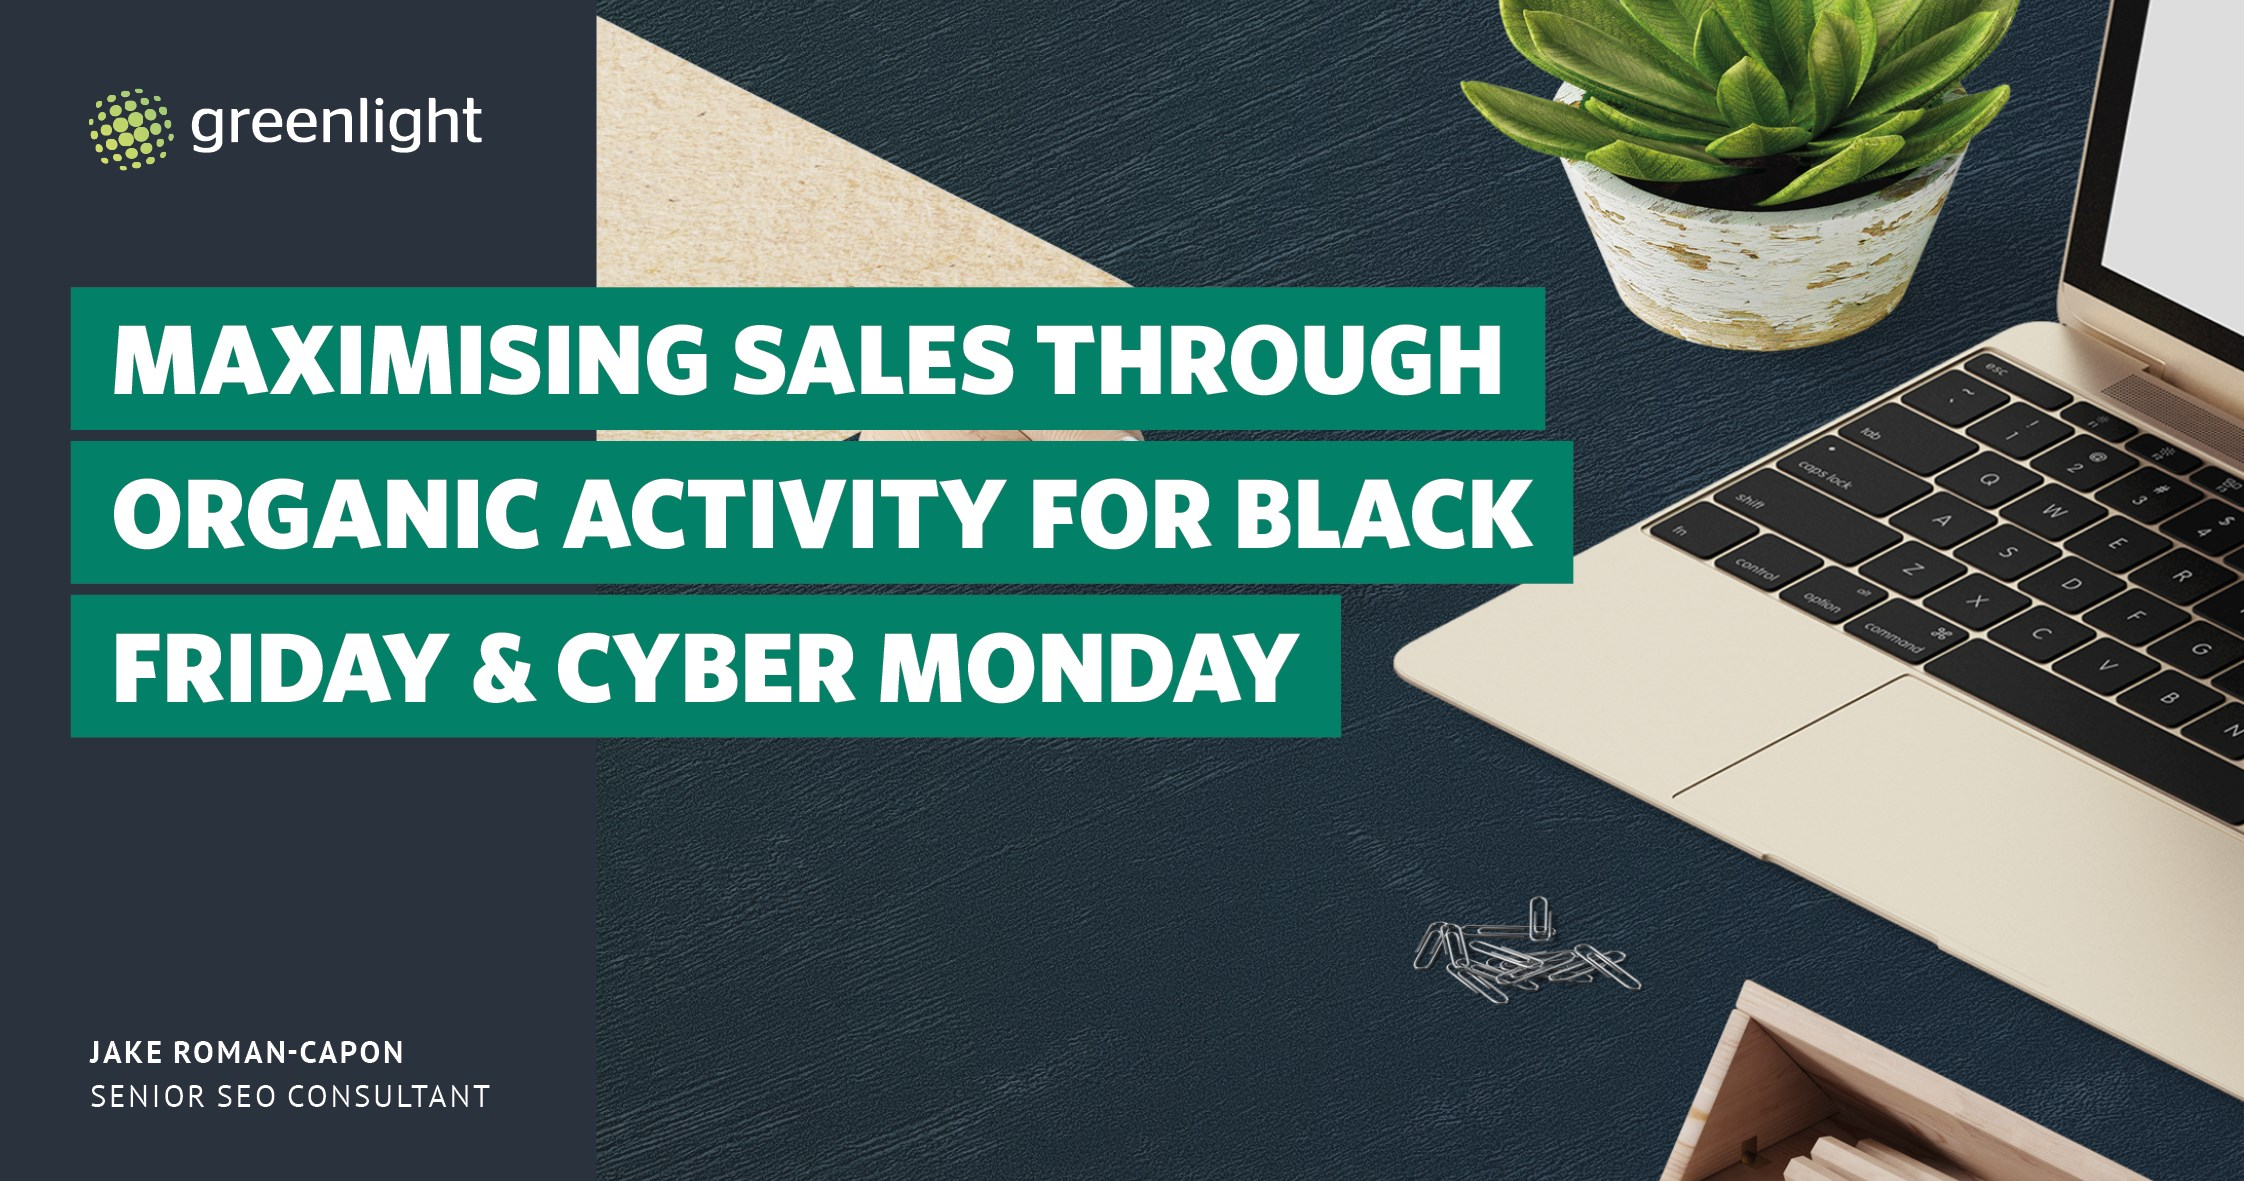 Maximising Sales Through Organic Activity For Black Friday & Cyber Monday